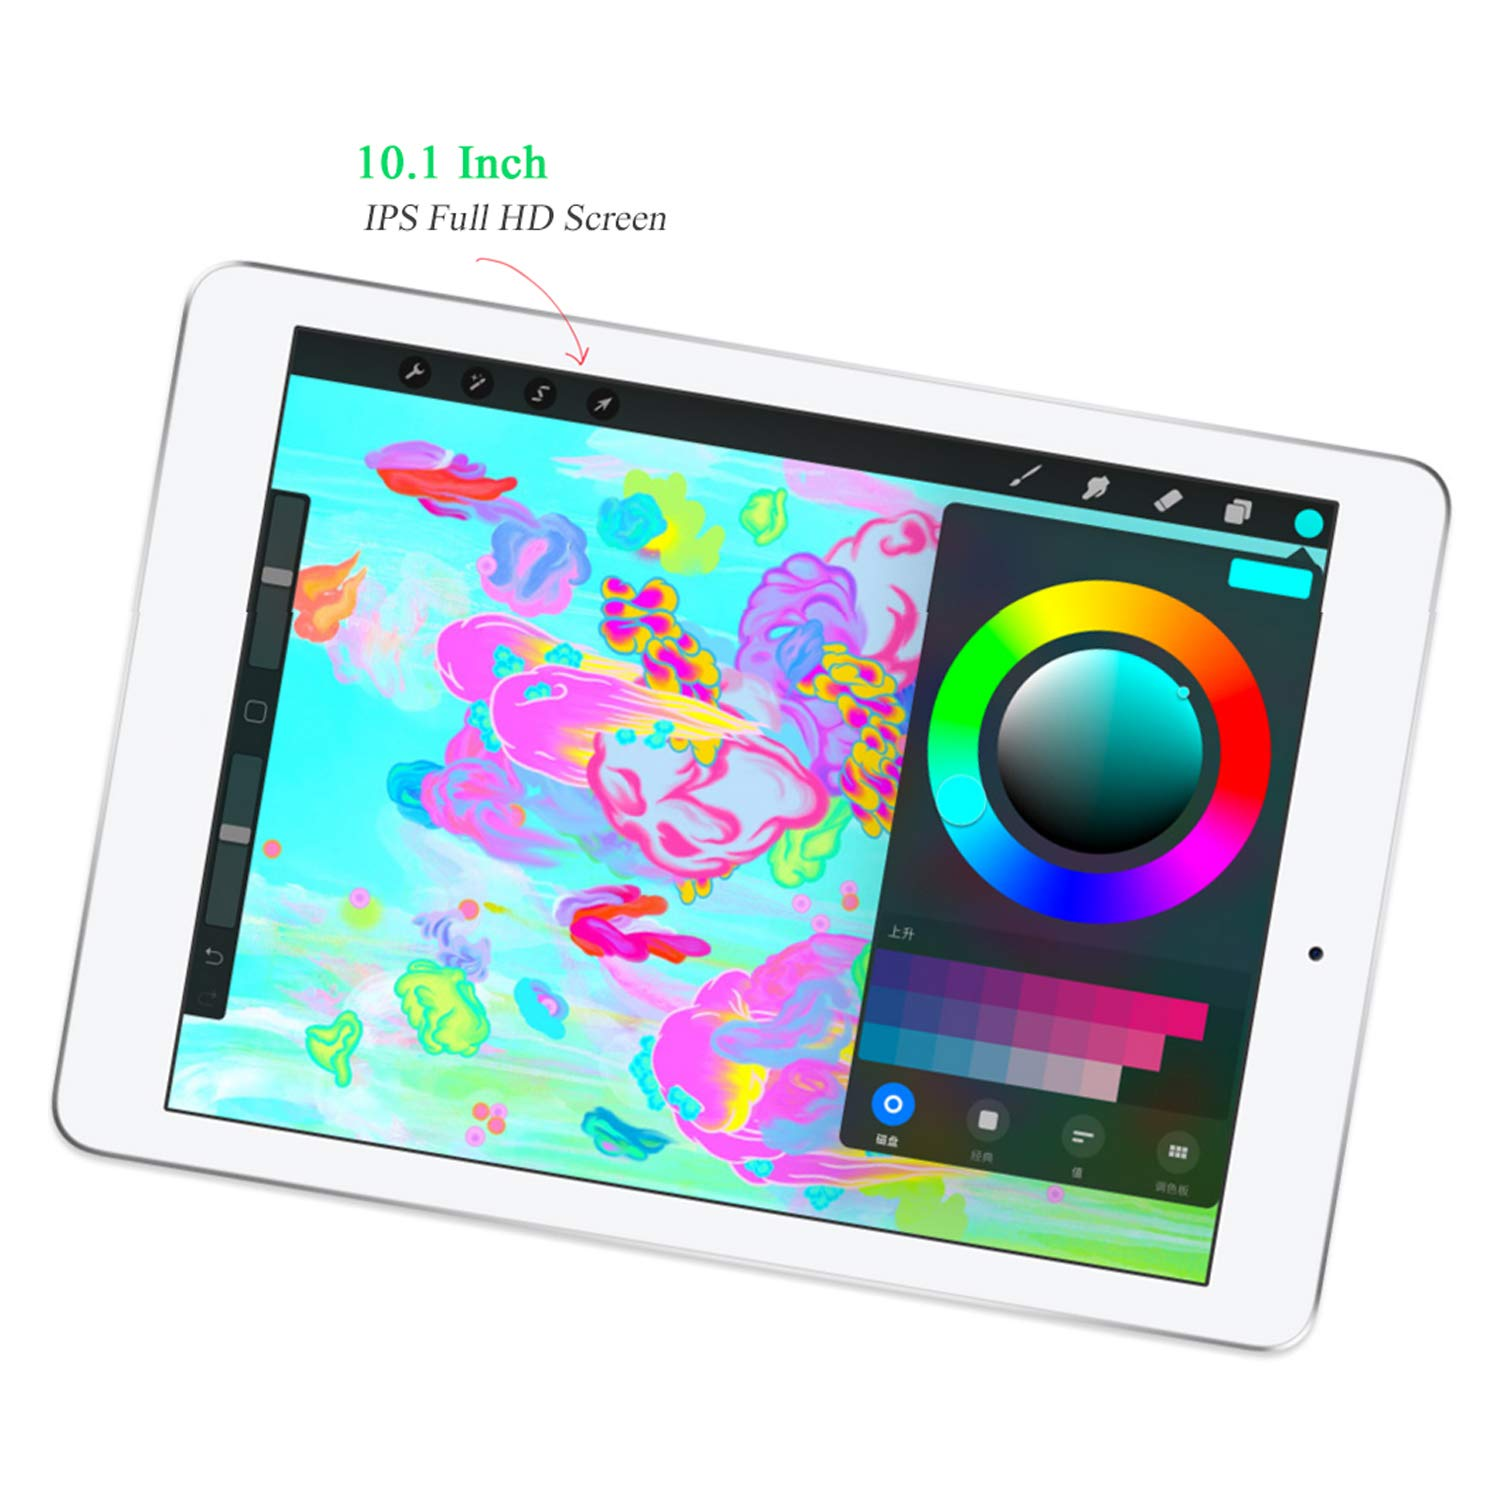 Android Phone Tablet Archives - Best Reviews Tablet